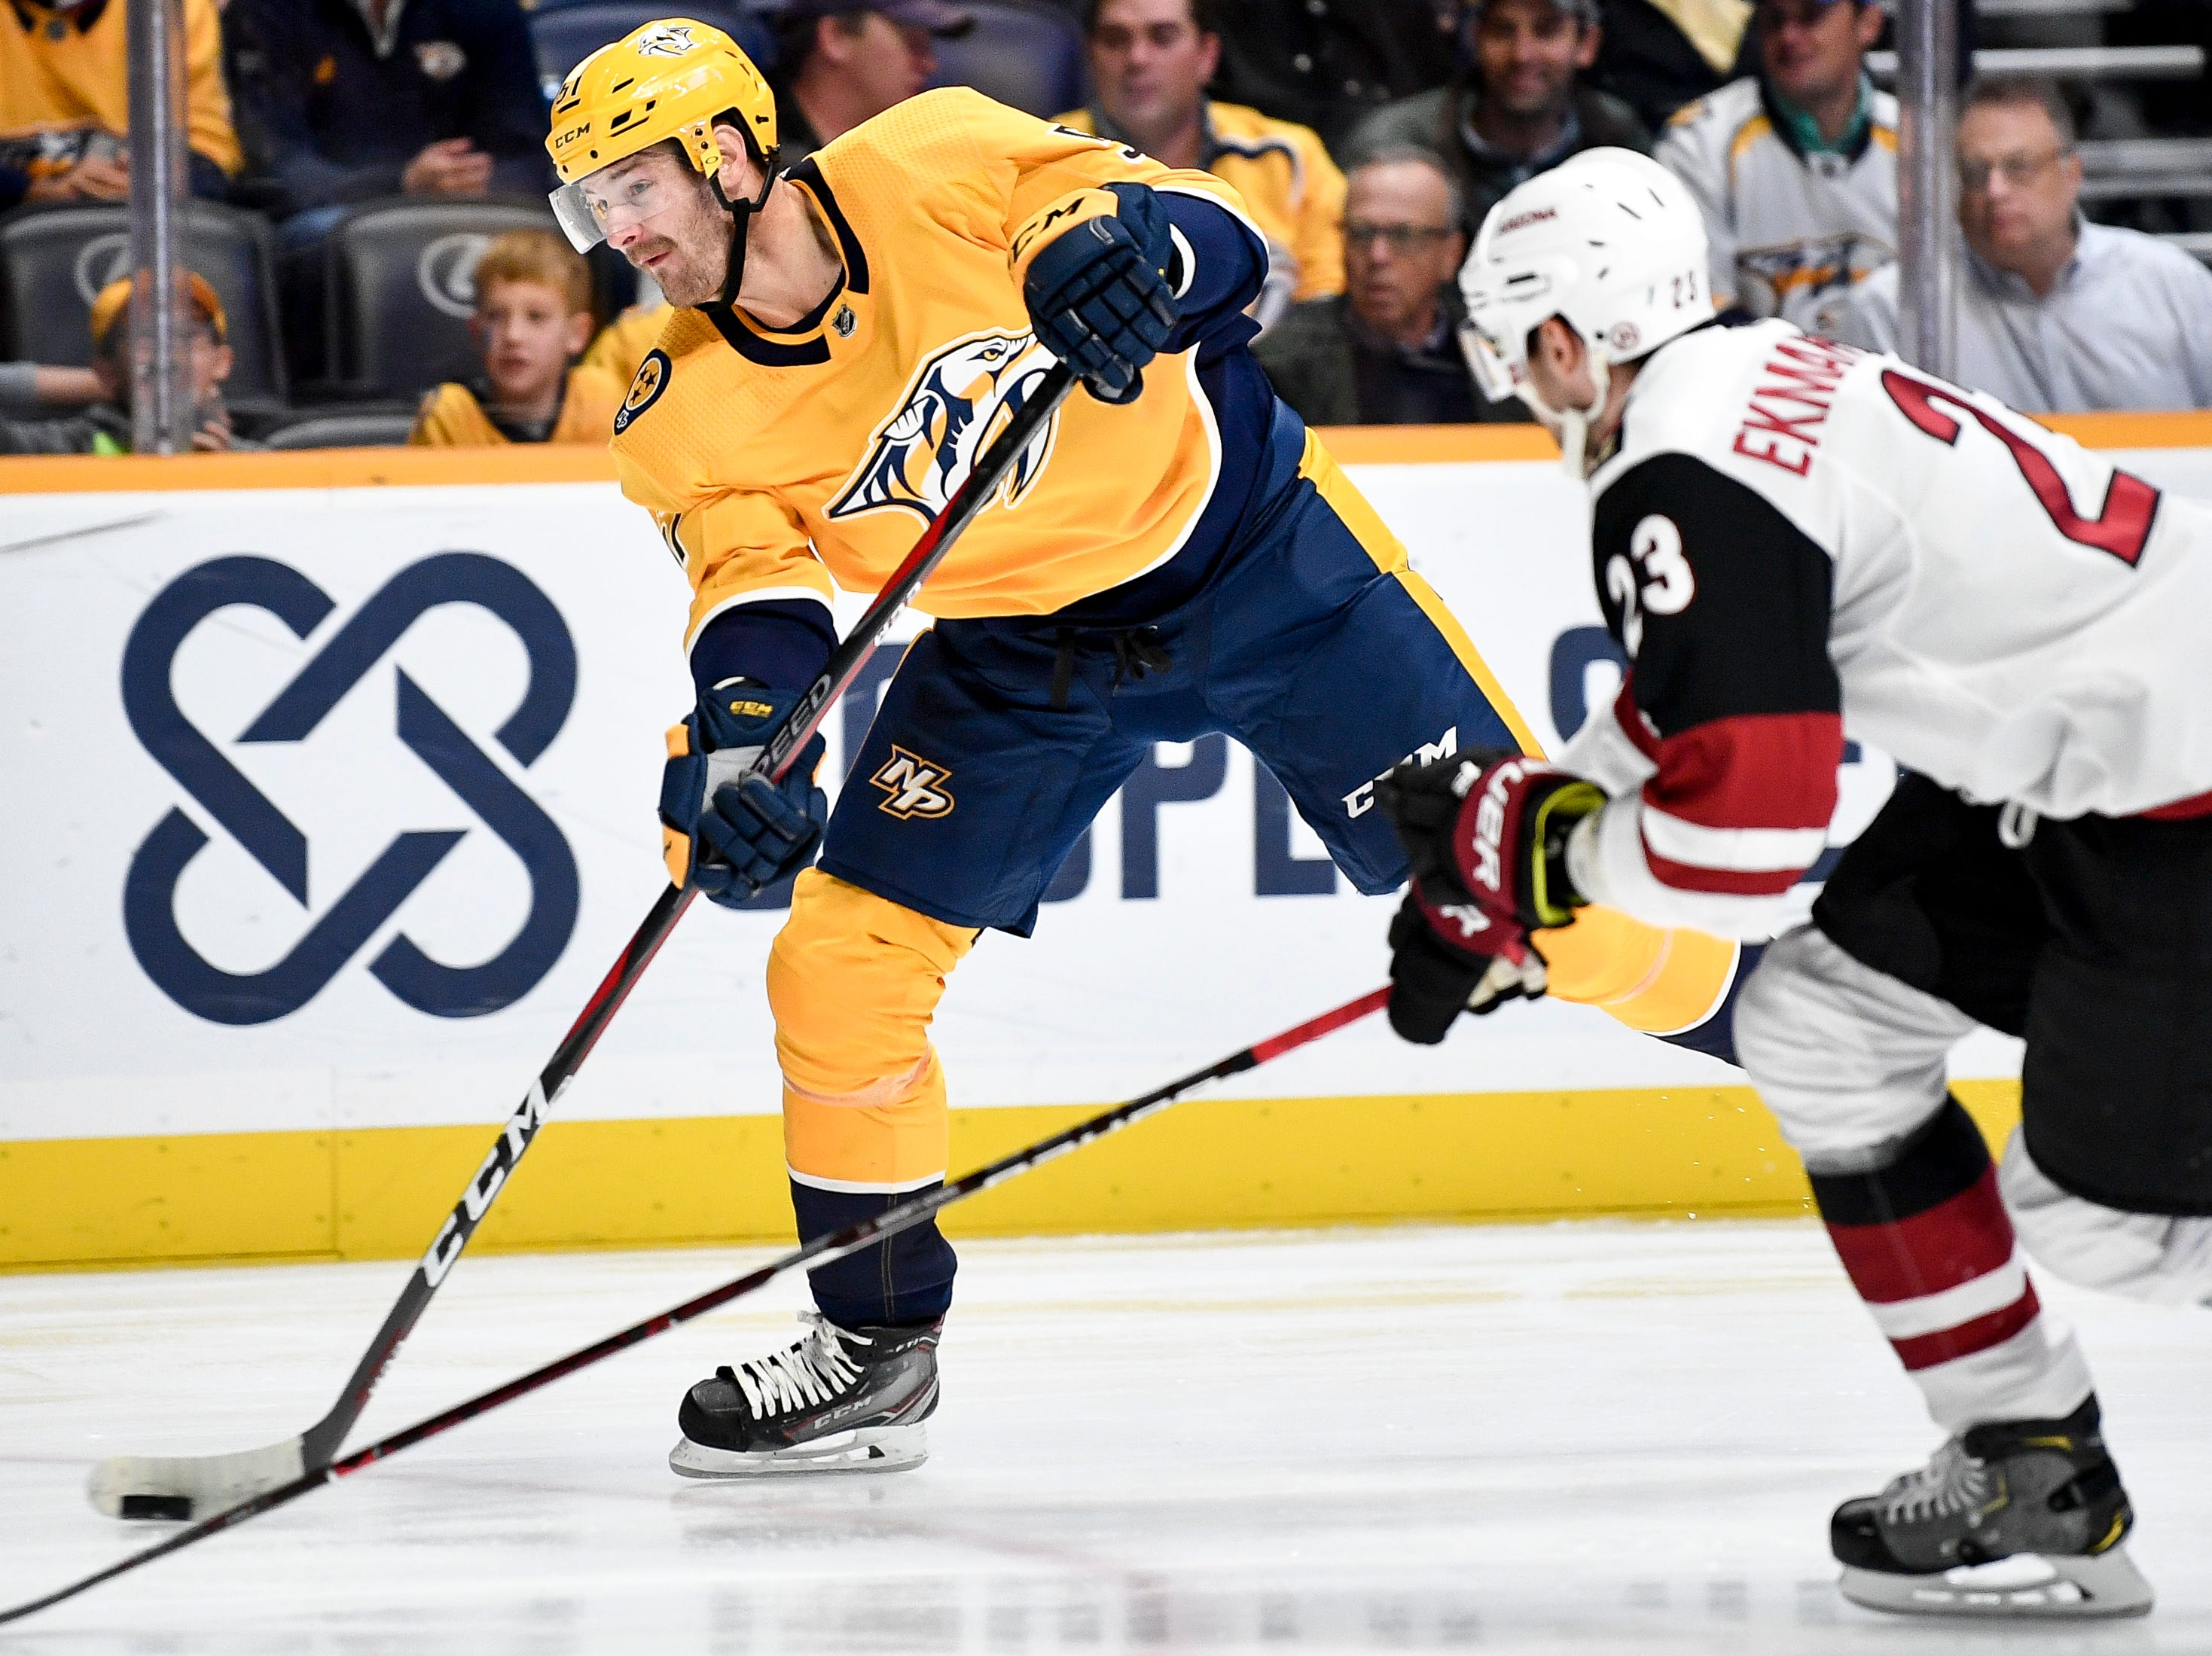 Nashville Predators left wing Austin Watson (51) shoots past Arizona Coyotes defenseman Oliver Ekman-Larsson (23) during the first period at Bridgestone Arena in Nashville, Tenn., Thursday, Nov. 29, 2018.